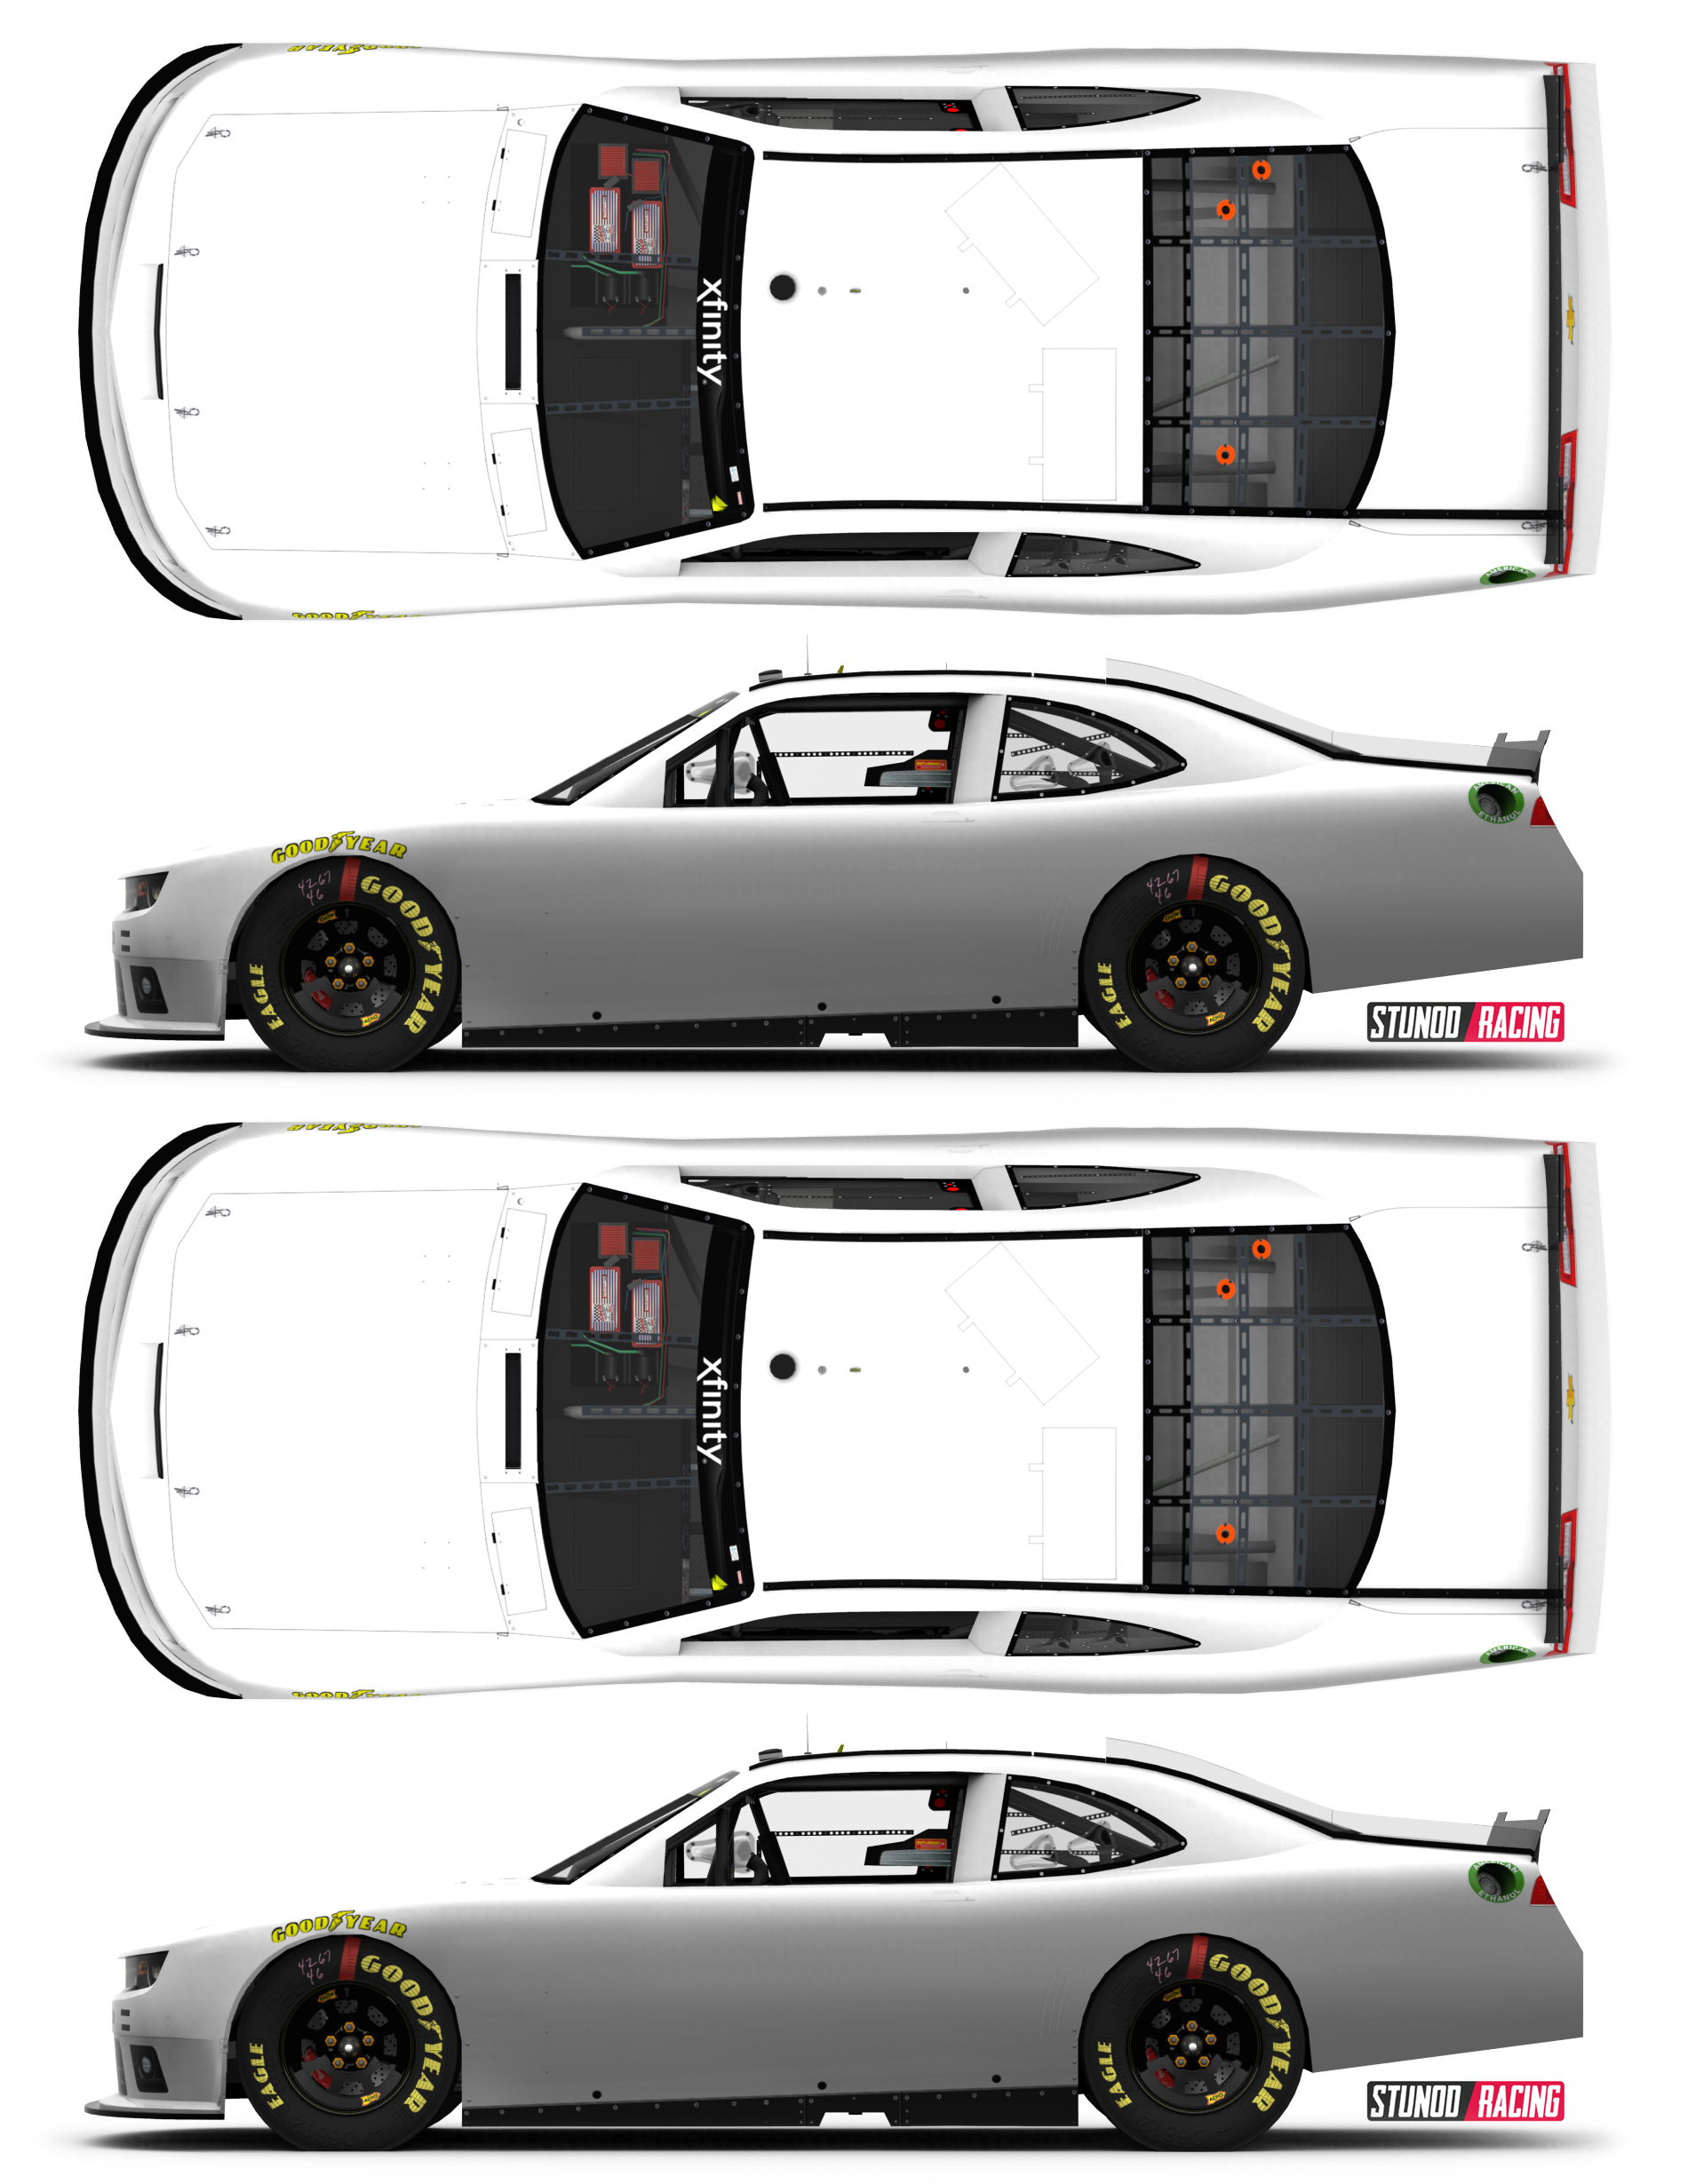 Nascar blank car templates circuit diagram maker for Blank race car templates